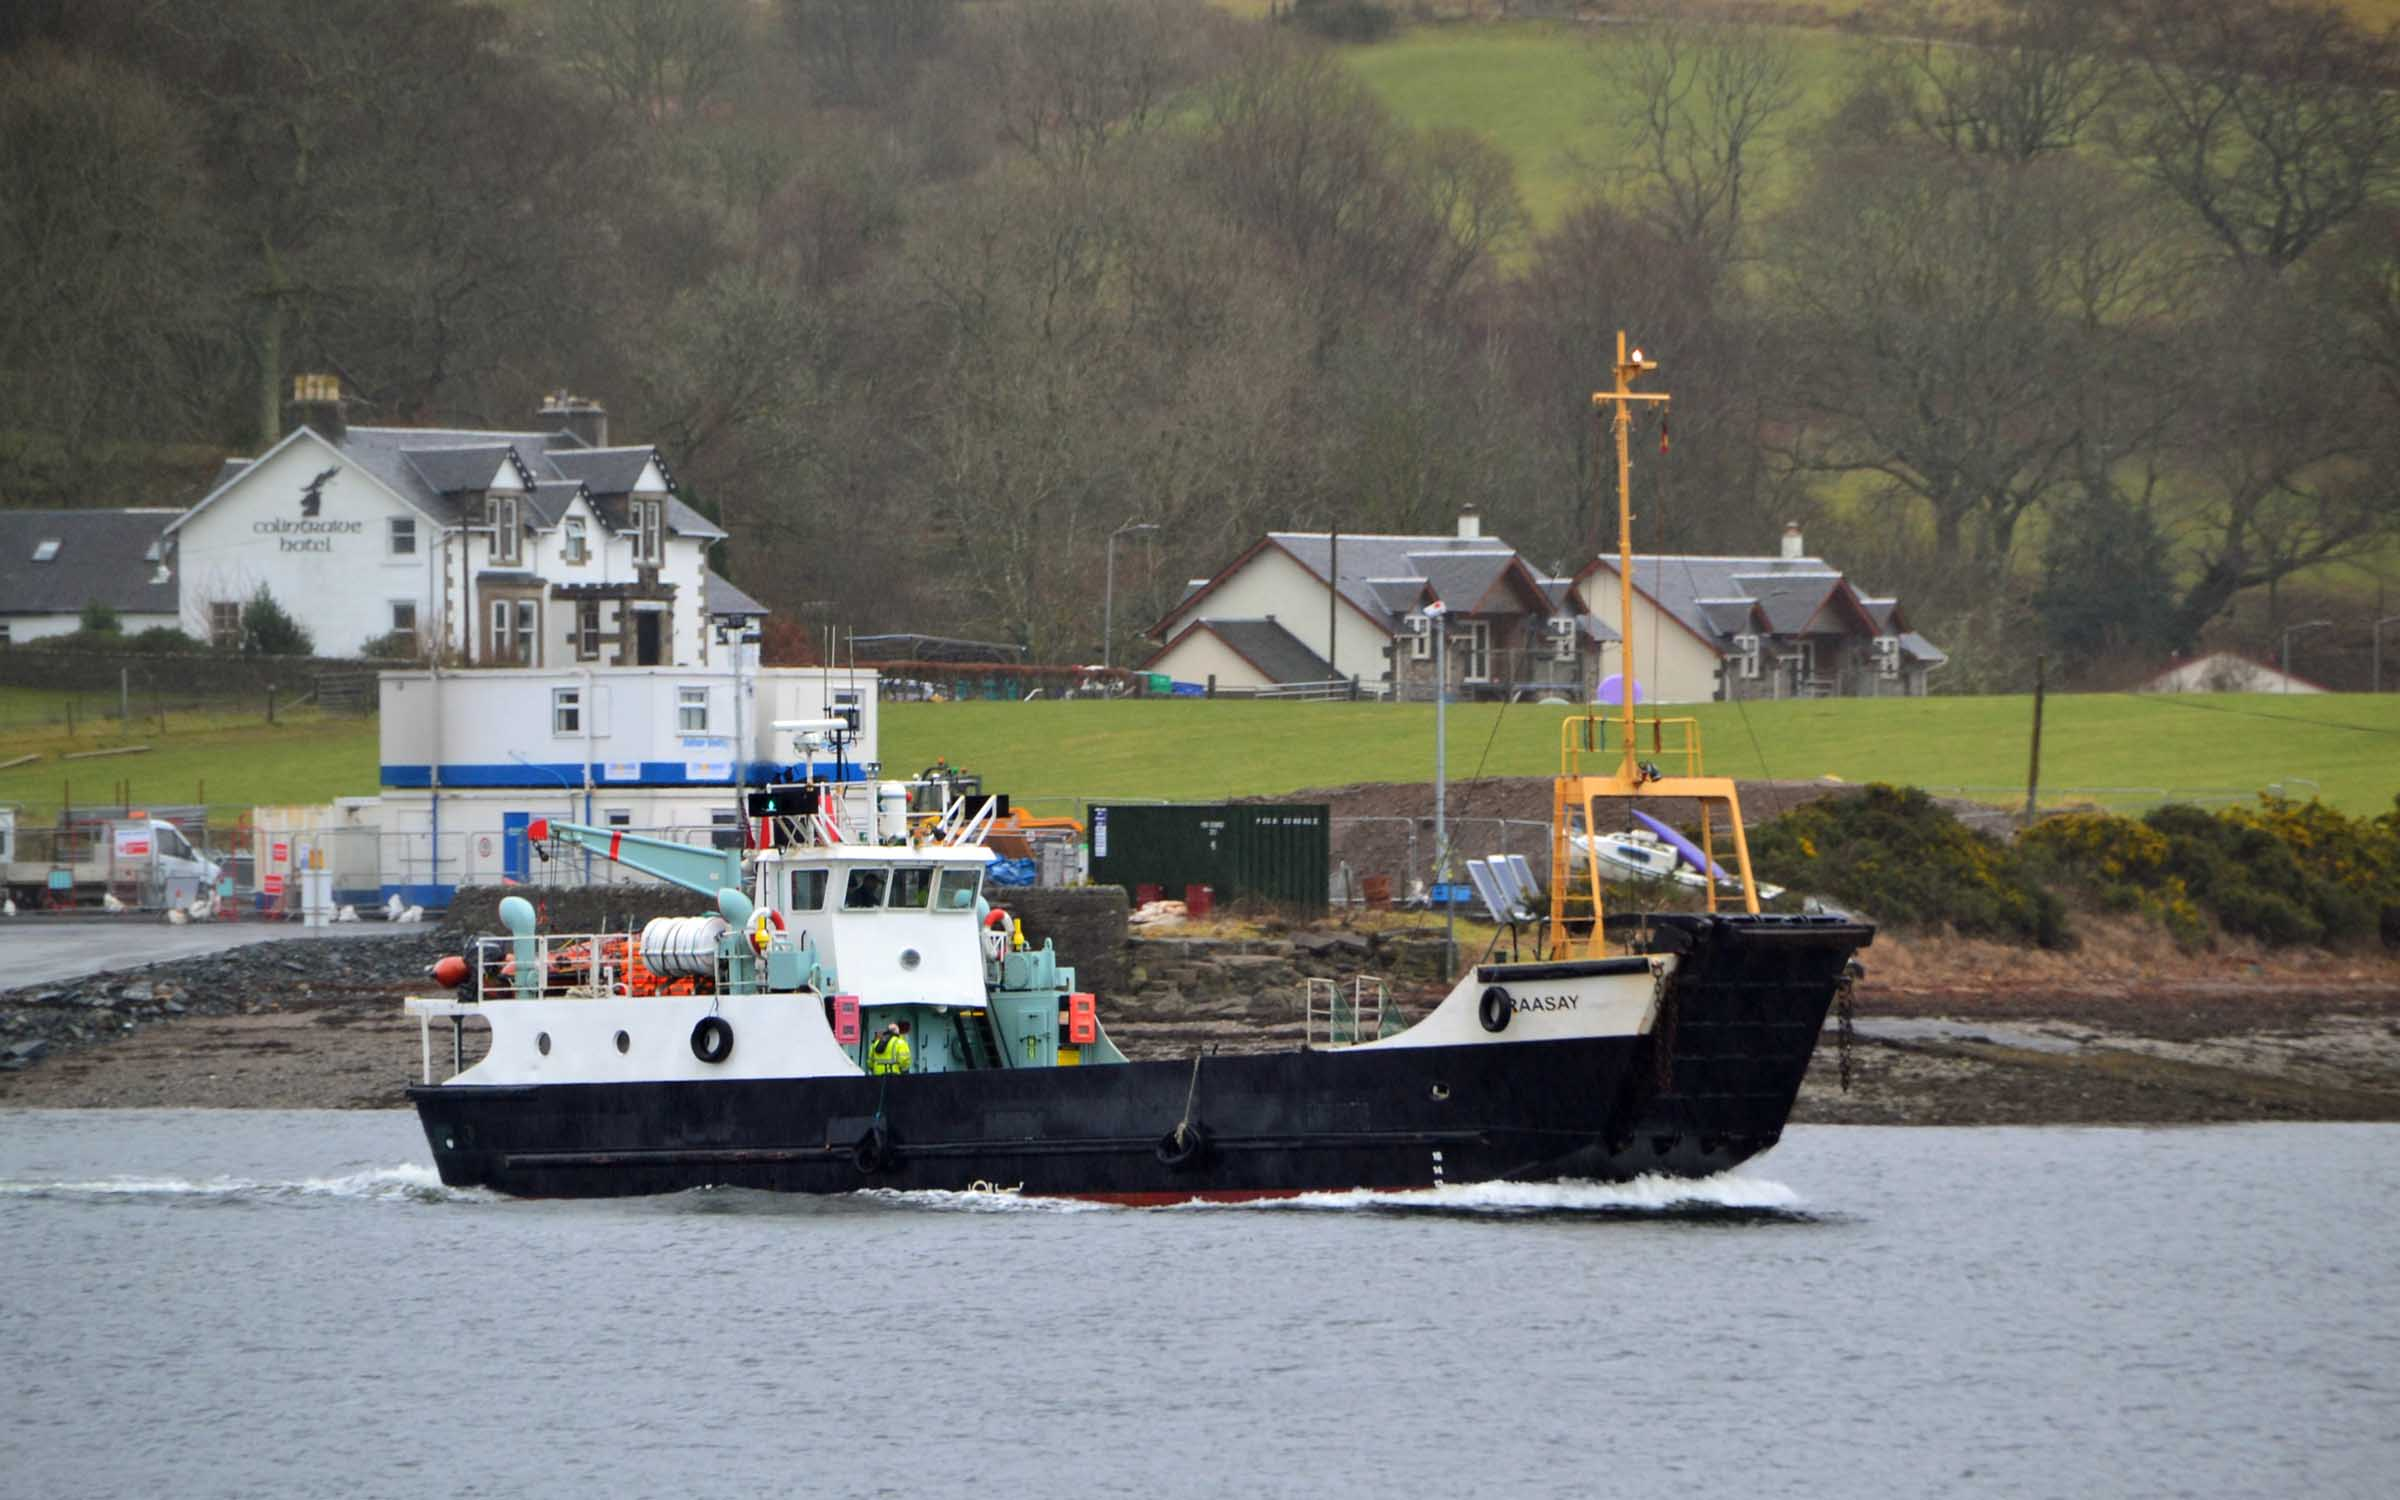 Raasay leaving Colintraive for the last time (Ships of CalMac)